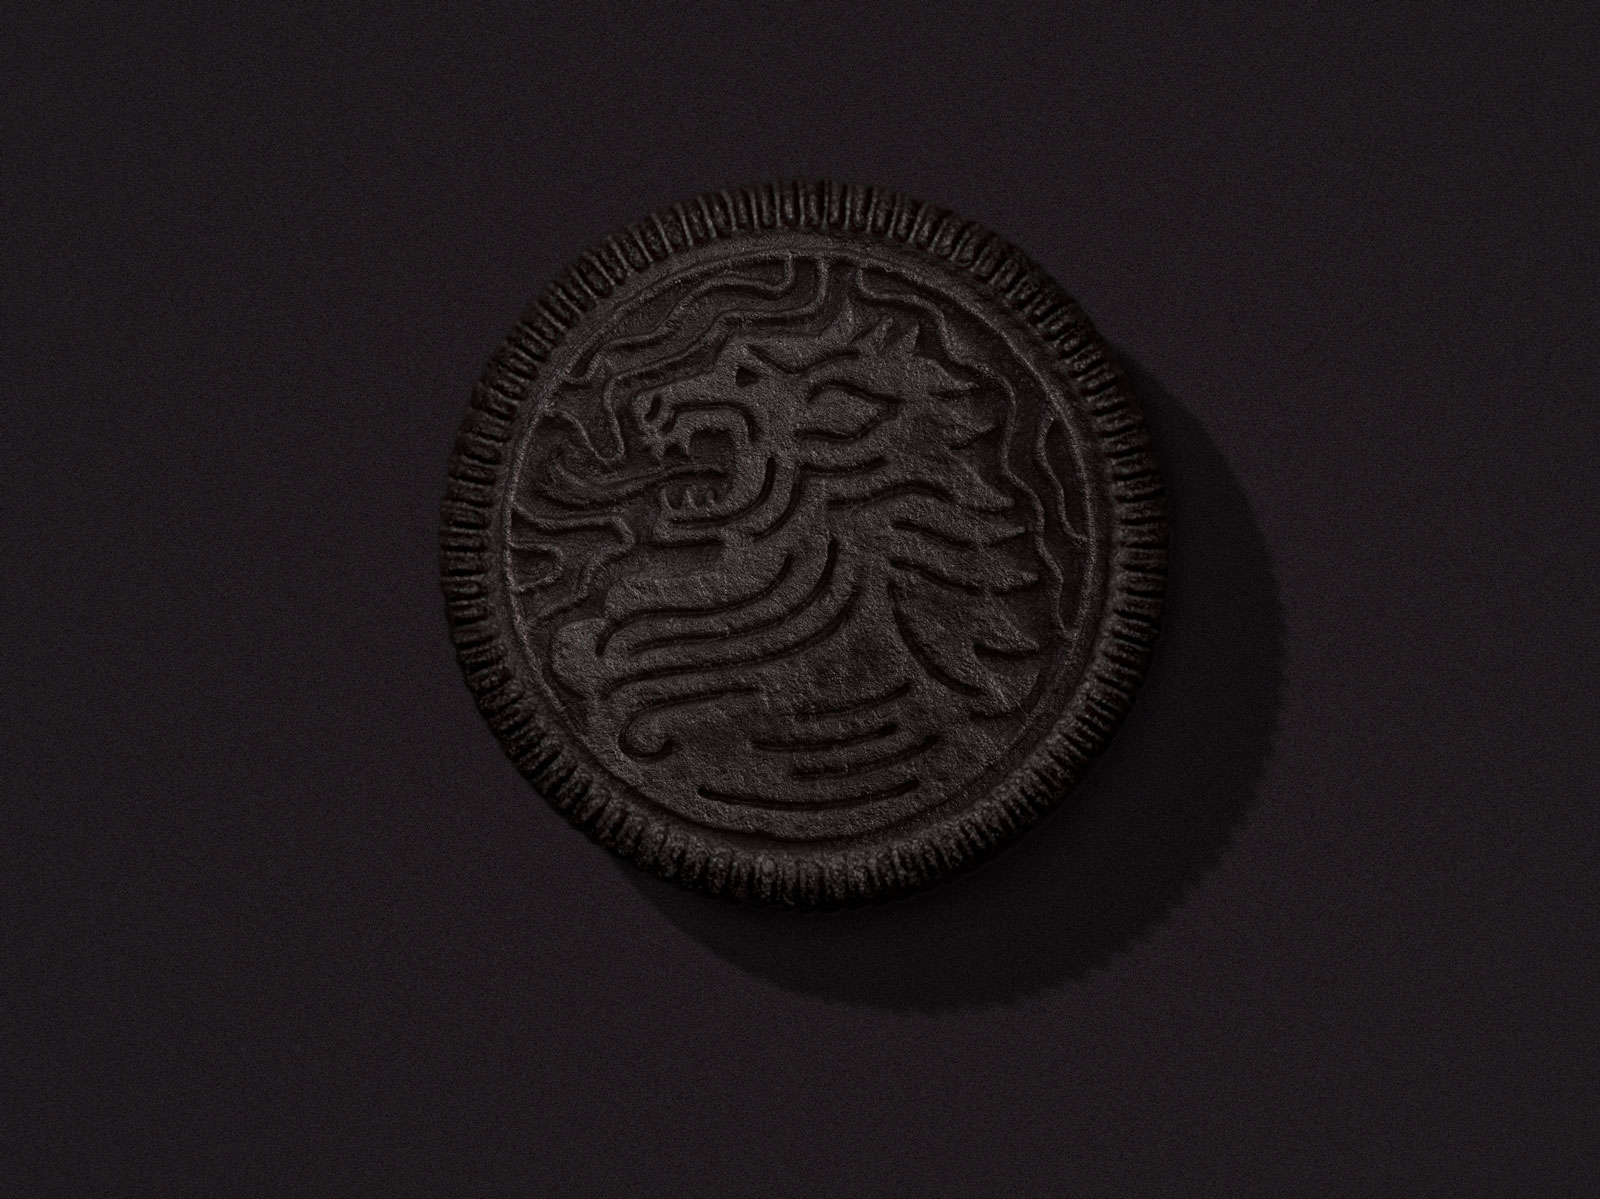 game-of-thrones-oreo-lannister-FT-BLOG0319.jpg